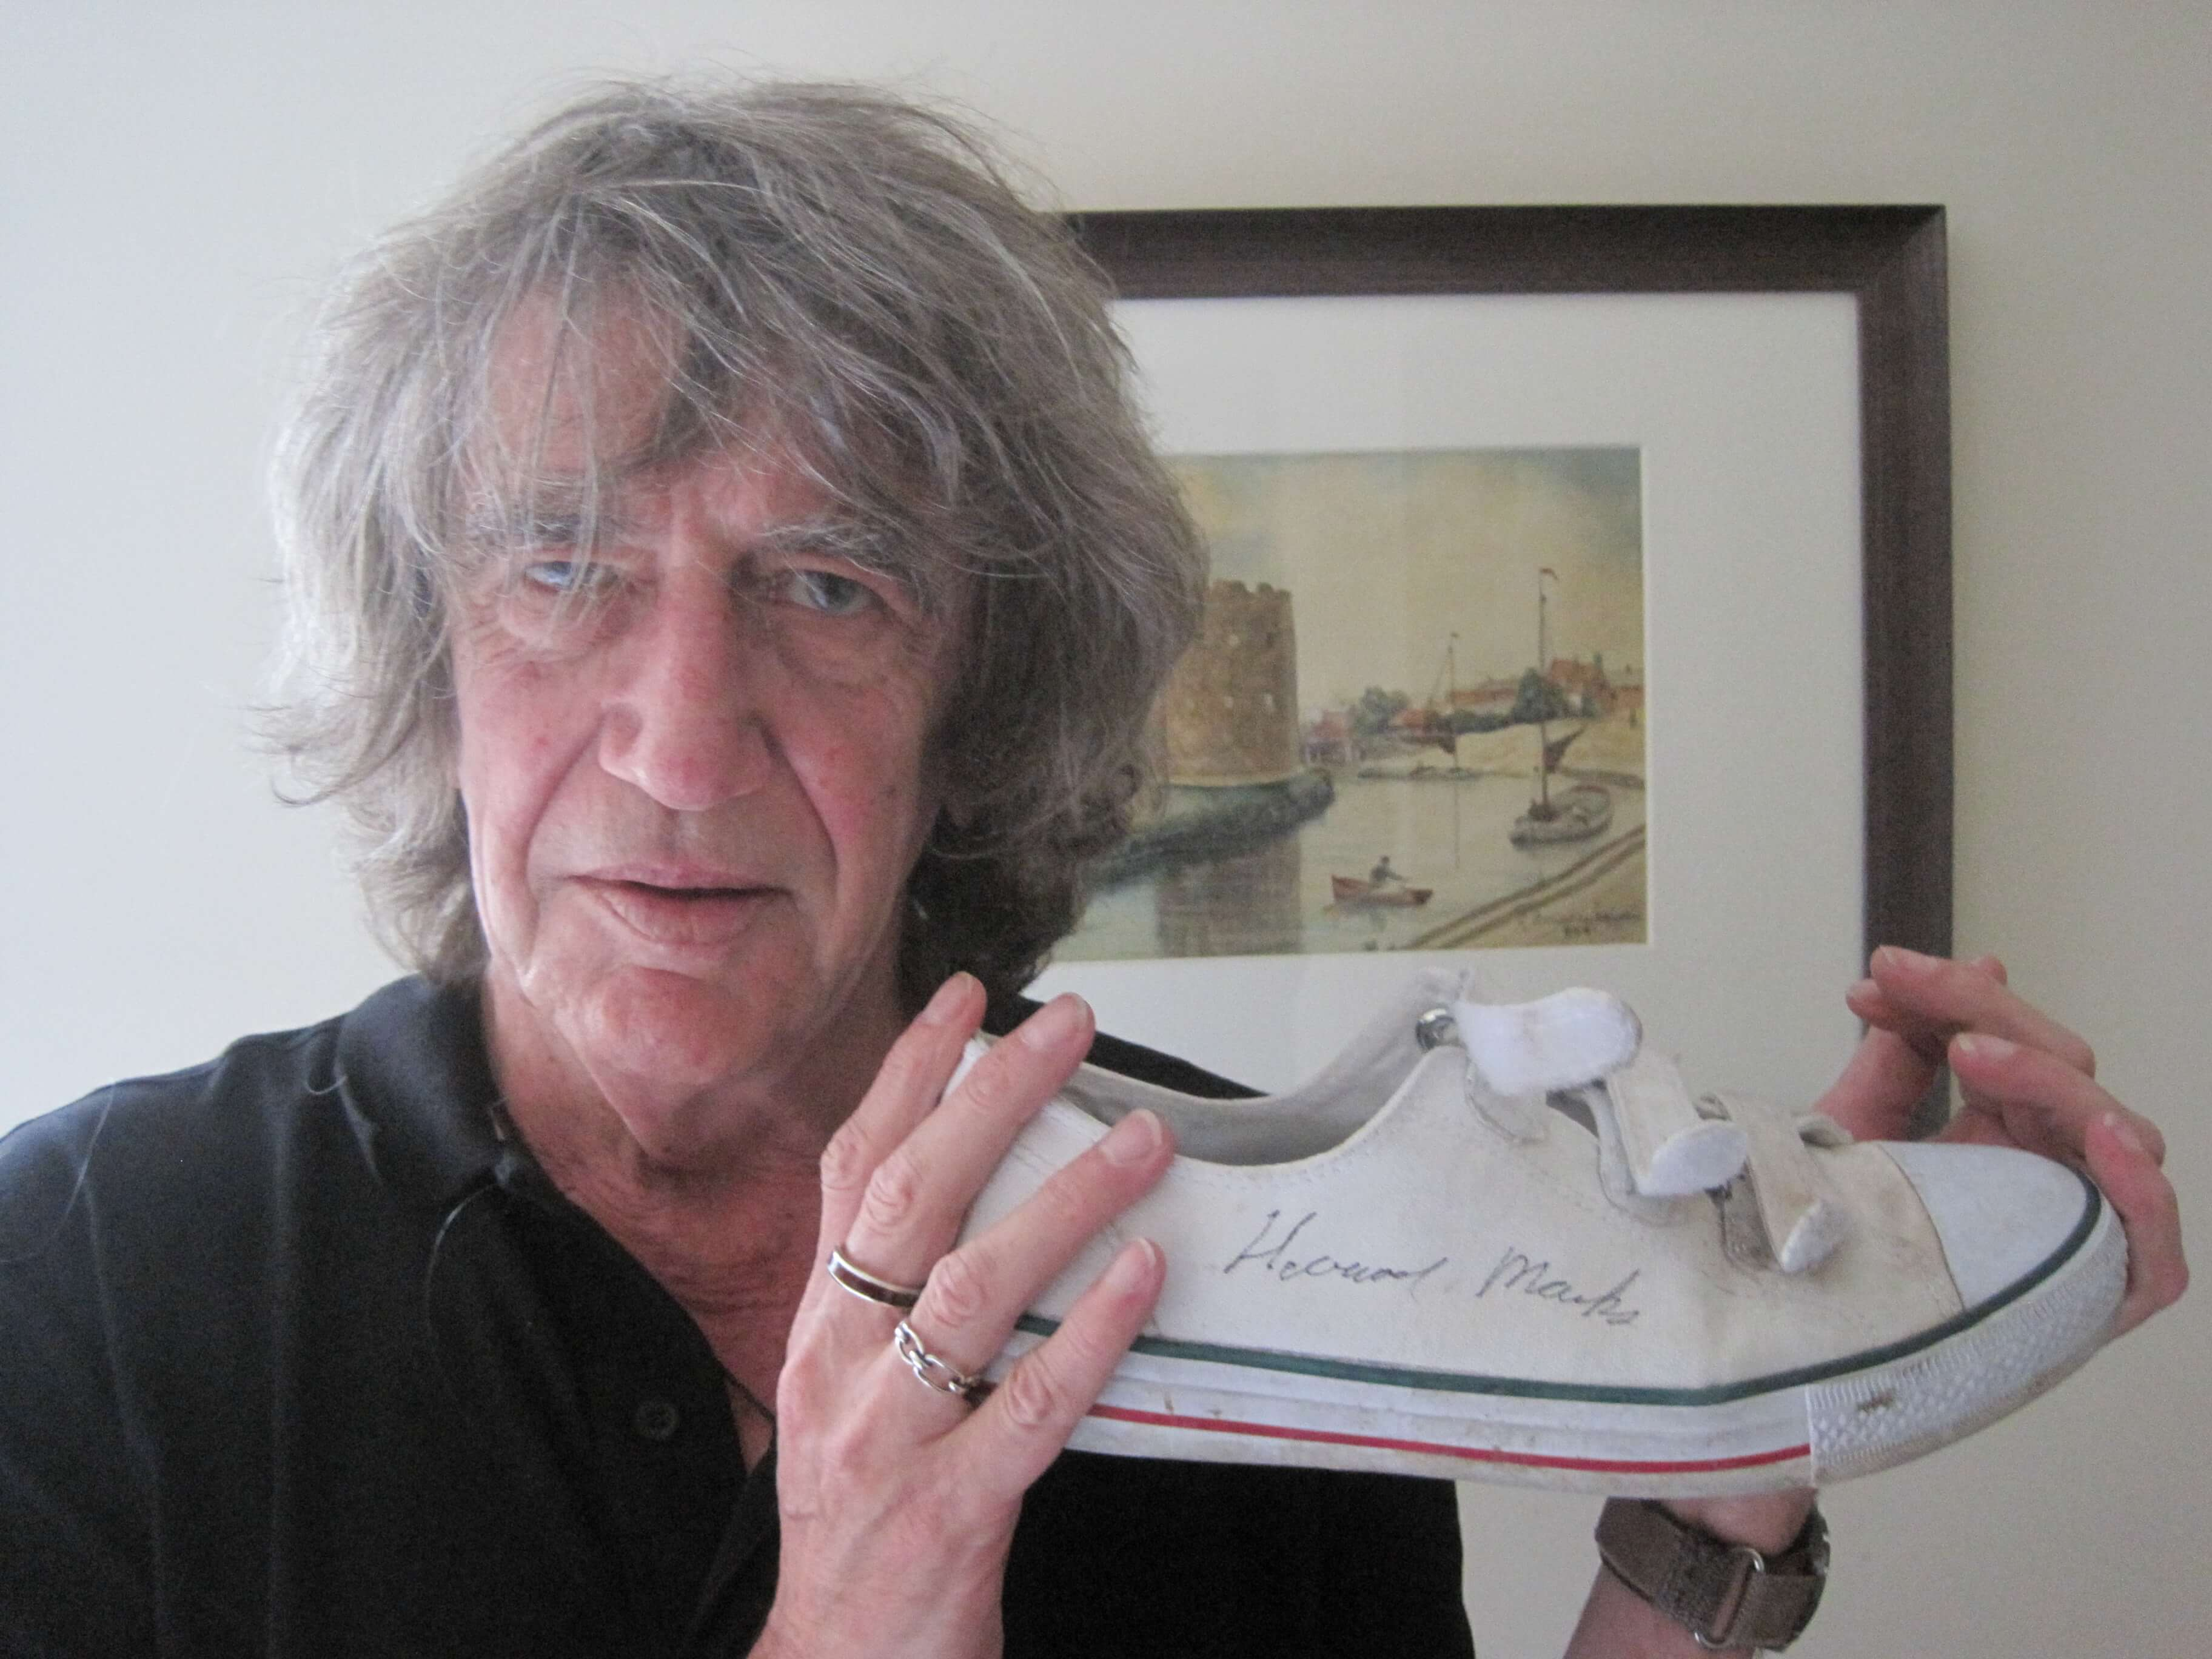 Howard Marks with the shoes he donated in 2011